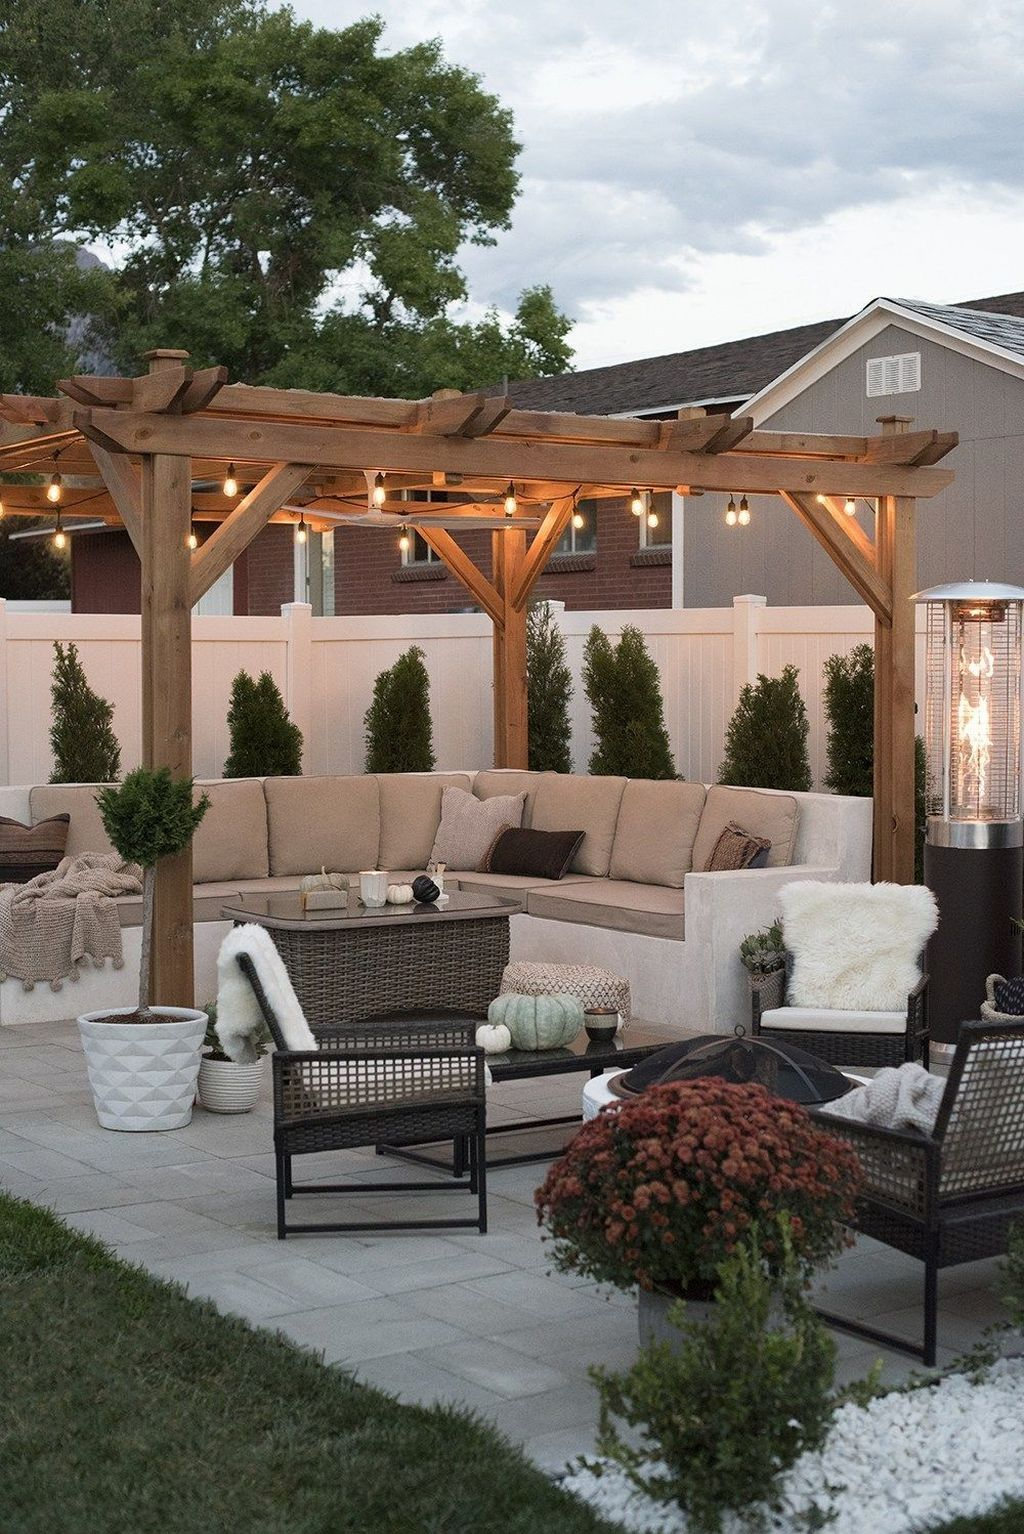 Wonderful Backyard Patio Designs Ideas Perfect For Summertime 20